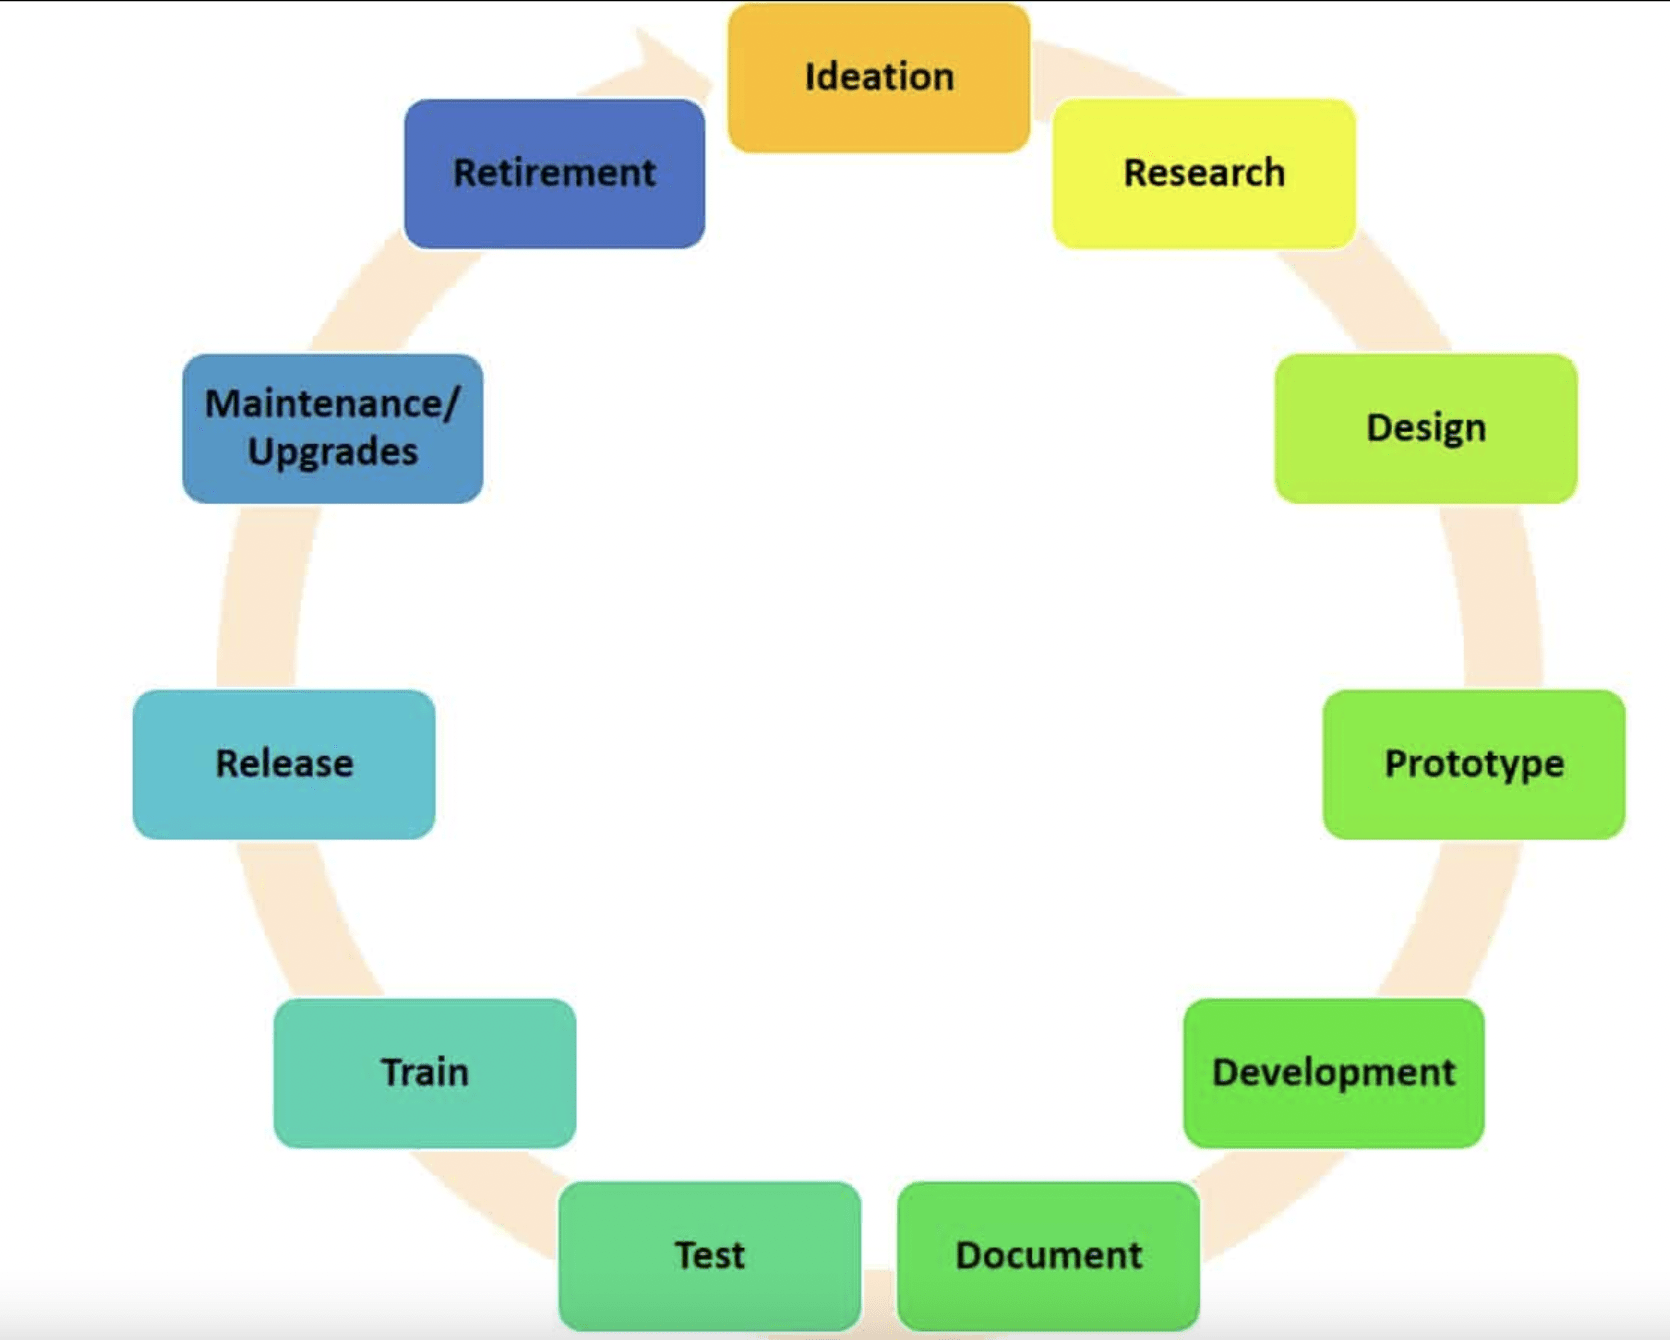 How should the product development cycle proceed? Process description based on Boldare's activity